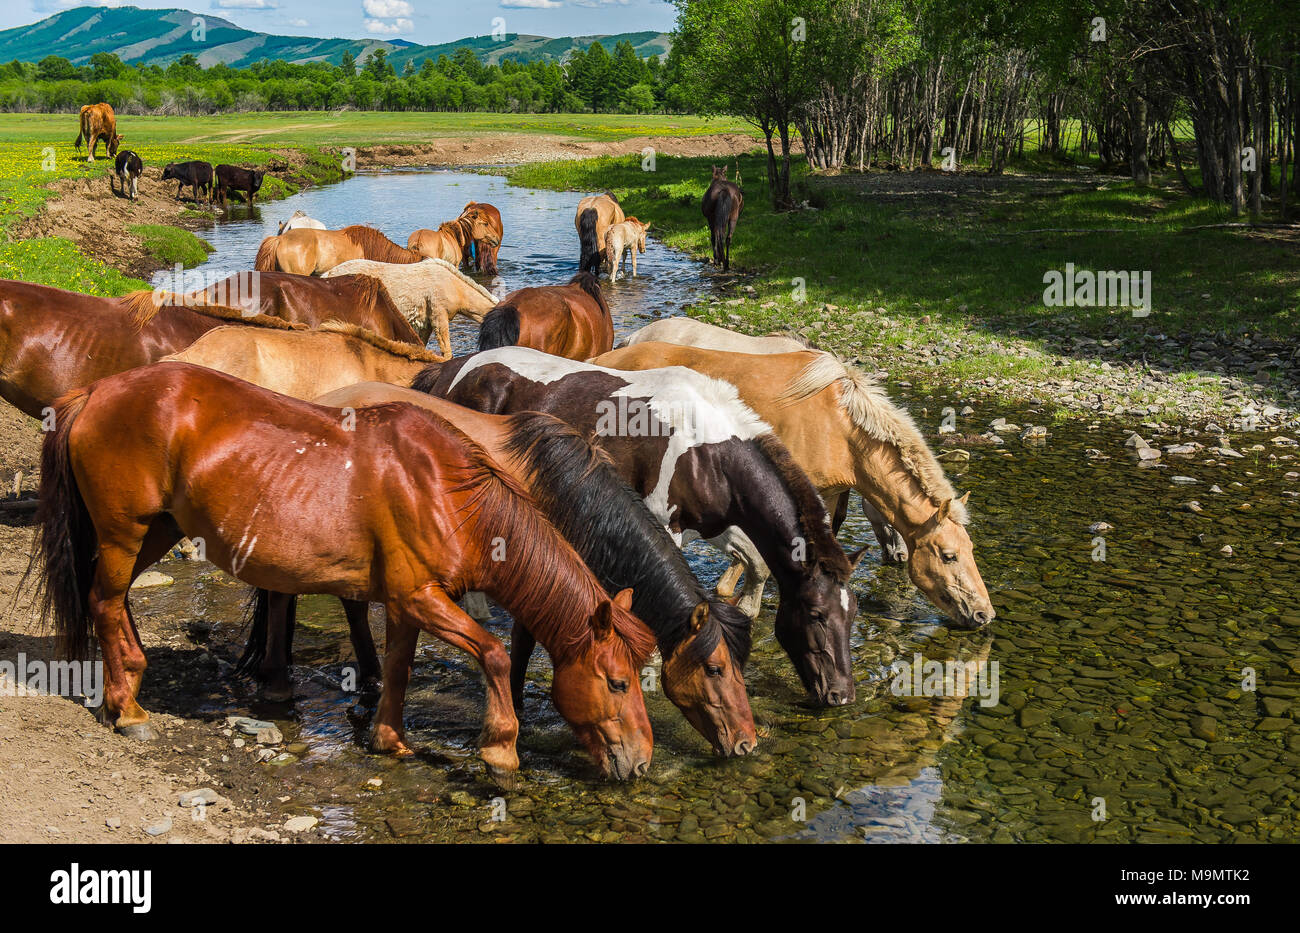 Flock of horses drinking water from a river, Mongolia - Stock Image